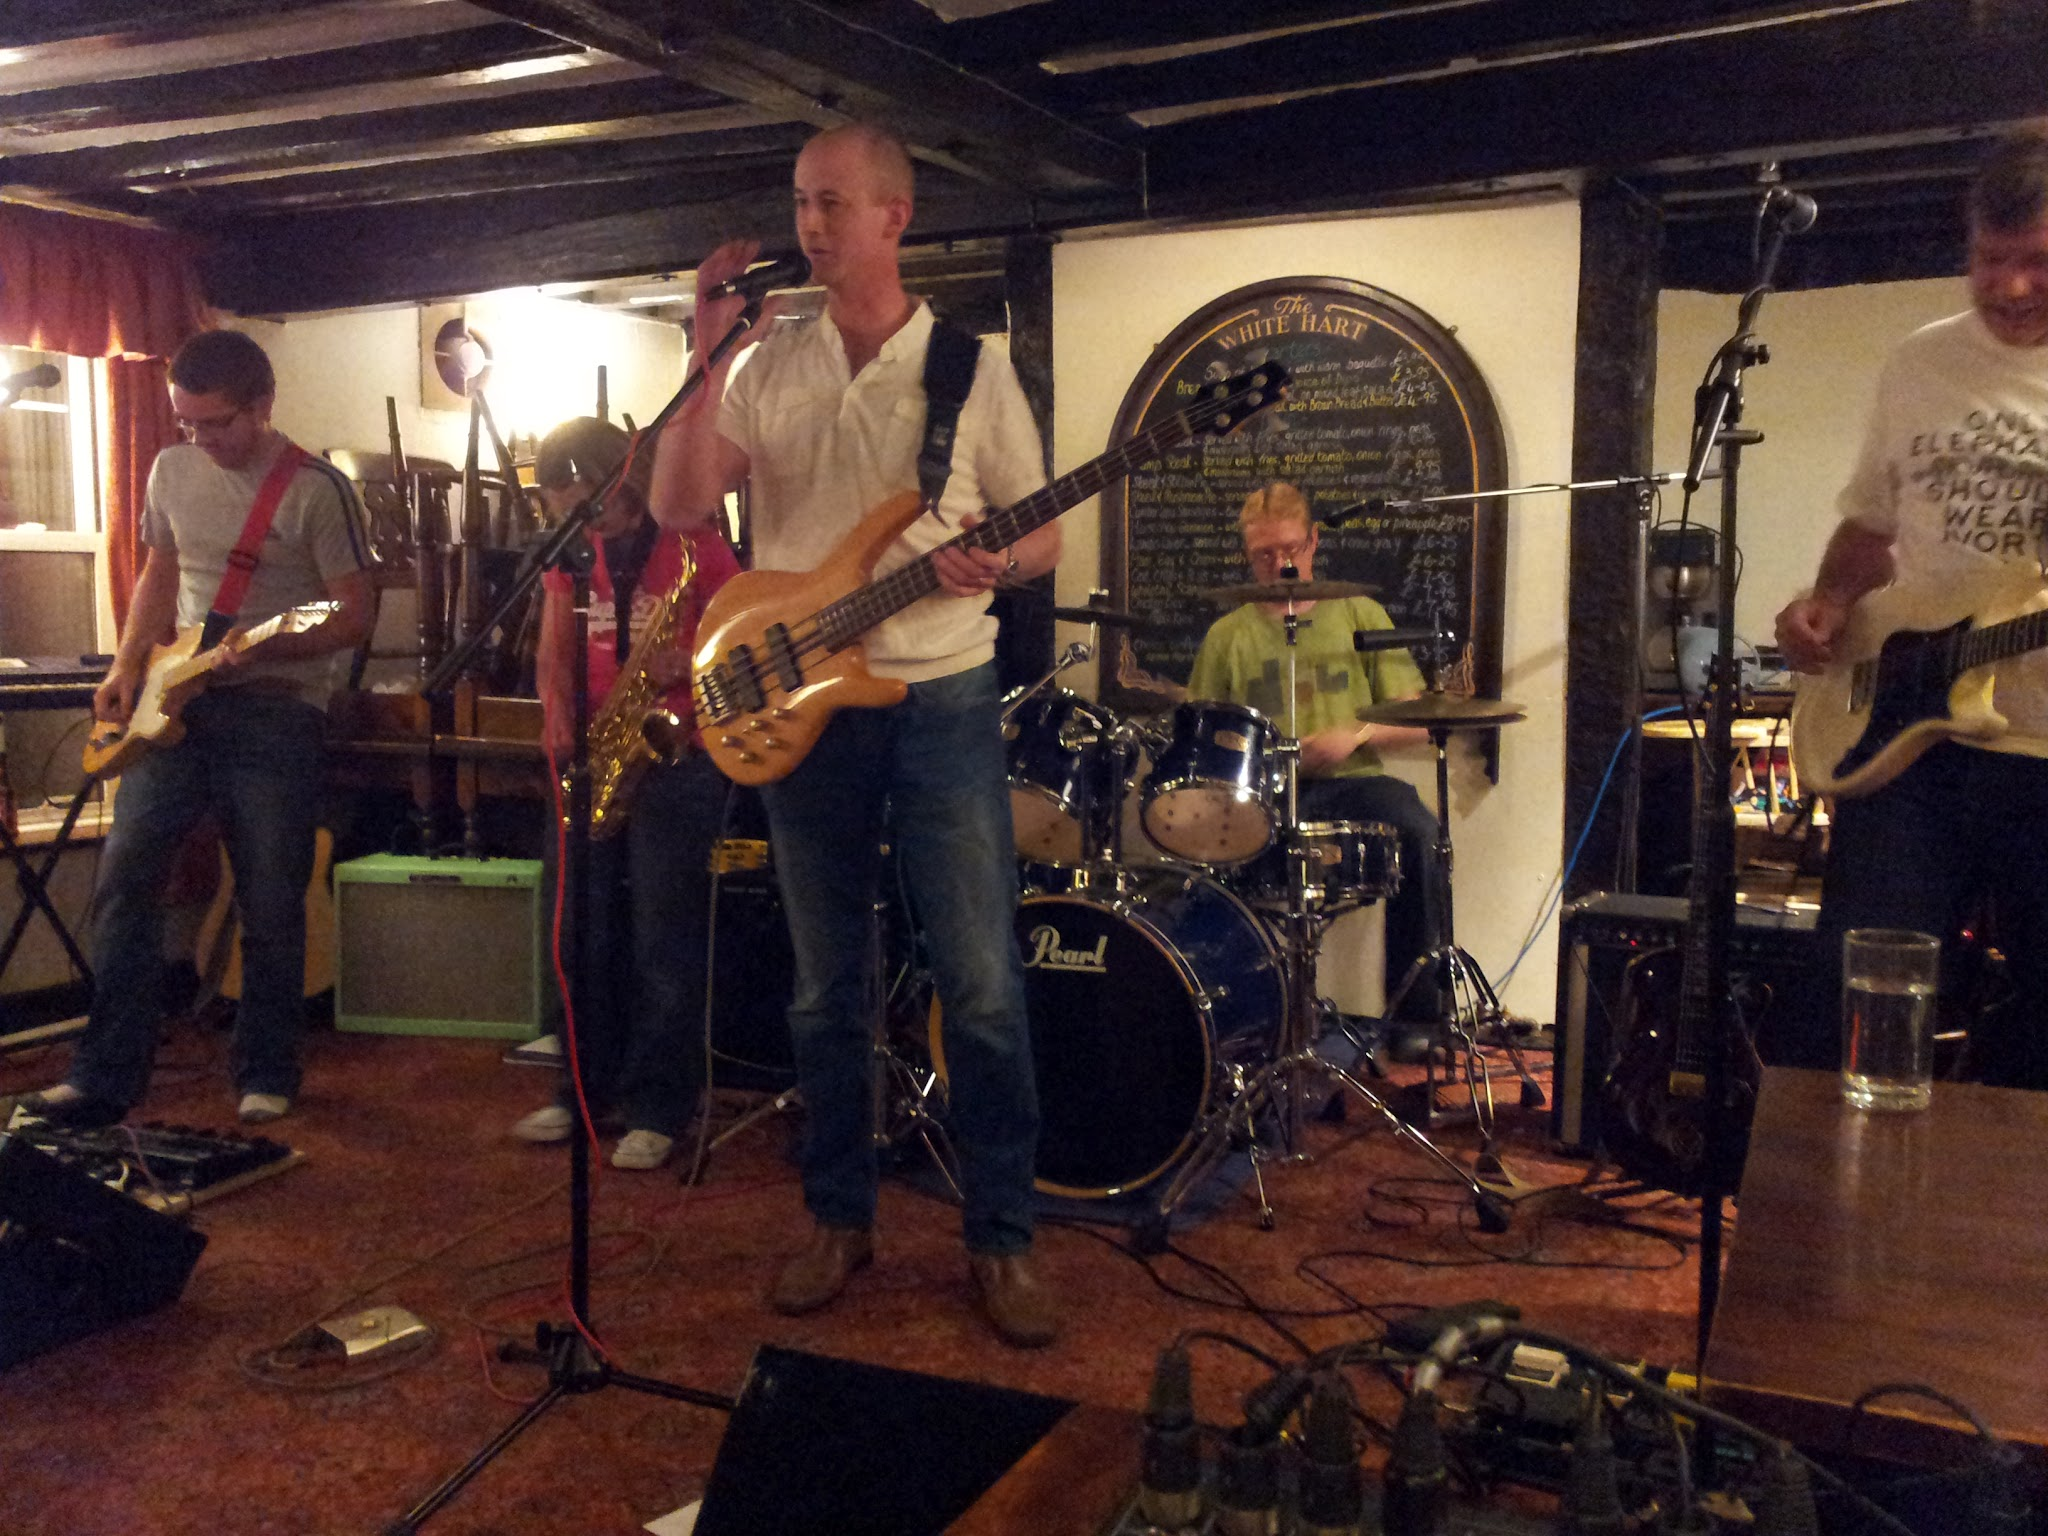 The Extra Covers playing at the White Heart in Thatcham